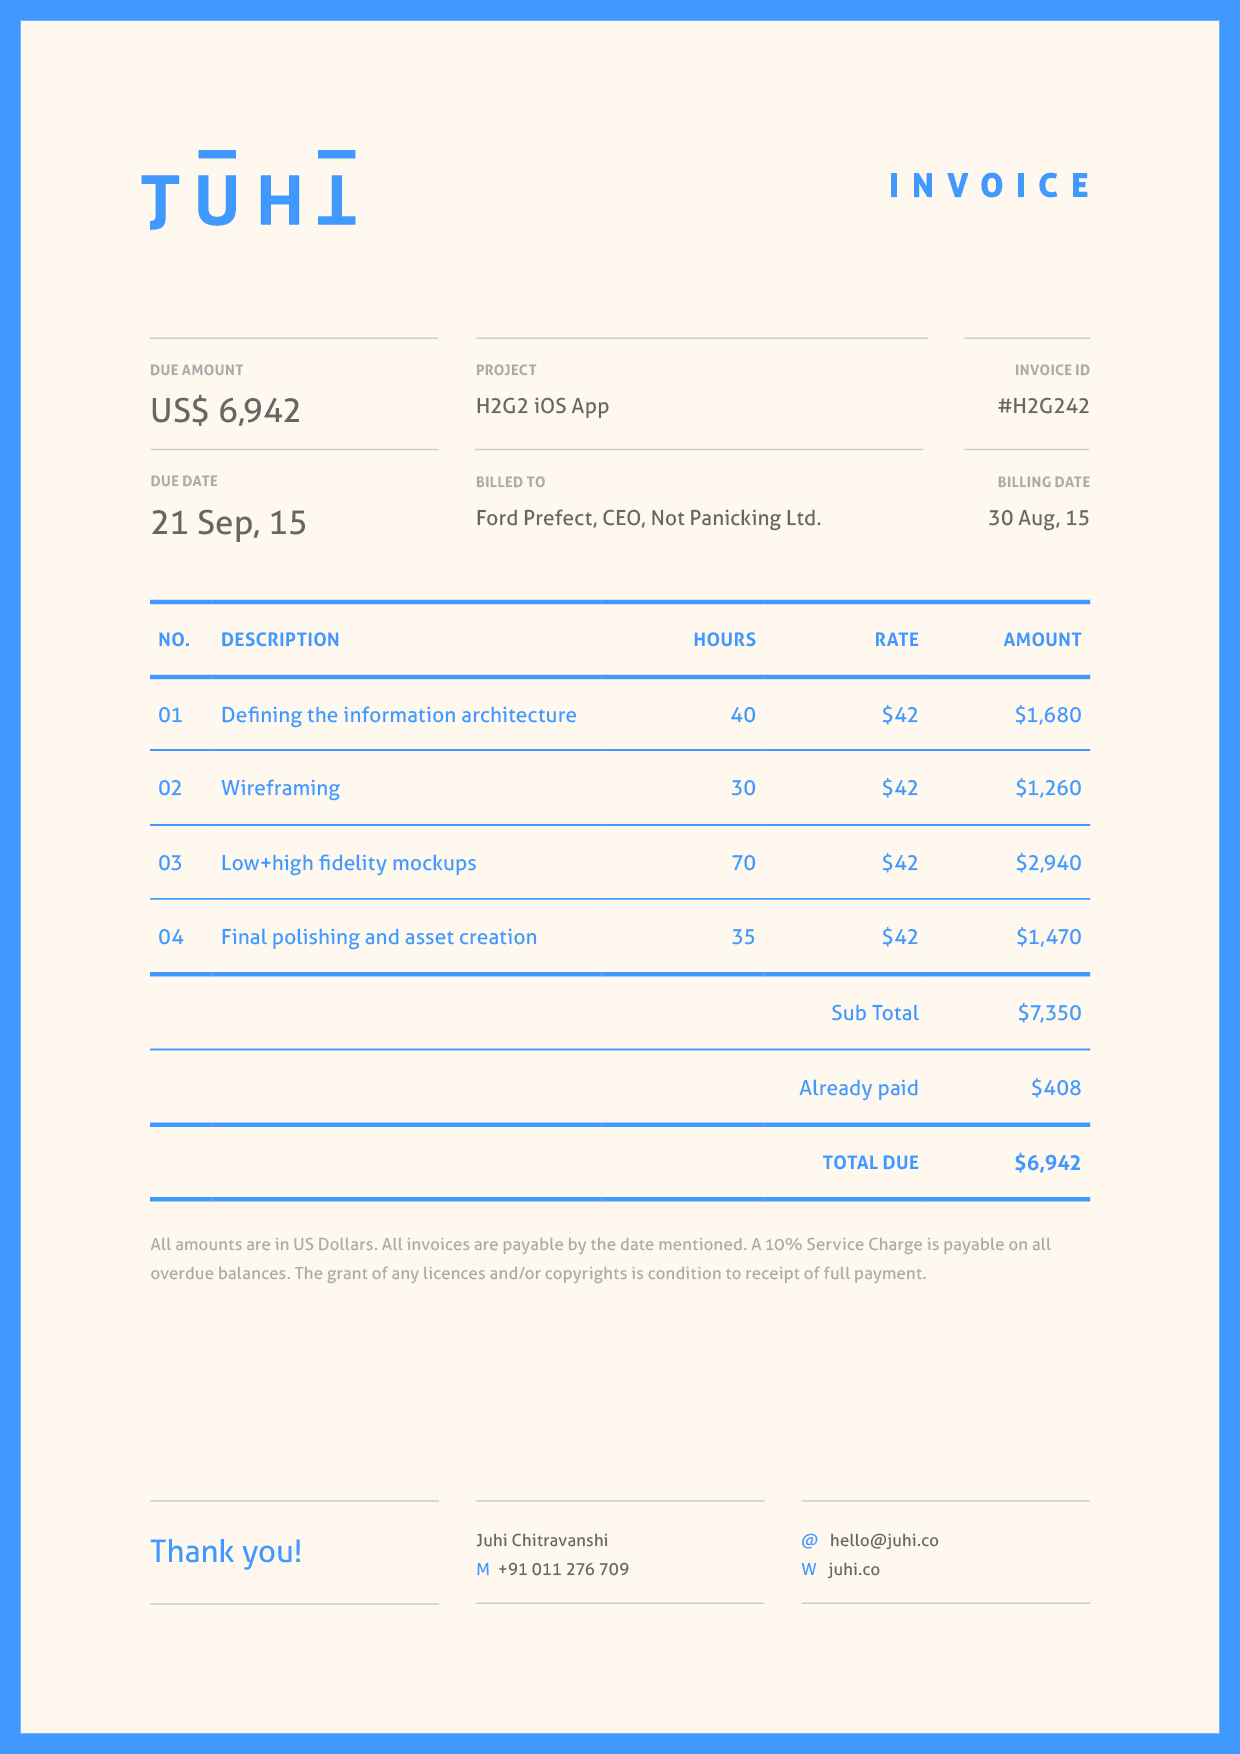 Centralasianshepherdus  Picturesque Dont Hold Back On Your Invoice  Inspiring Designs  With Interesting Invoice By Juhi Chitravanshi Follow With Extraordinary Software For Billing And Invoicing Also How To Layout An Invoice In Addition What Does Proforma Mean On An Invoice And Invoice Collection Service As Well As Free Invoice Template Mac Additionally Invoice Template With Gst From Inspirationfeedcom With Centralasianshepherdus  Interesting Dont Hold Back On Your Invoice  Inspiring Designs  With Extraordinary Invoice By Juhi Chitravanshi Follow And Picturesque Software For Billing And Invoicing Also How To Layout An Invoice In Addition What Does Proforma Mean On An Invoice From Inspirationfeedcom